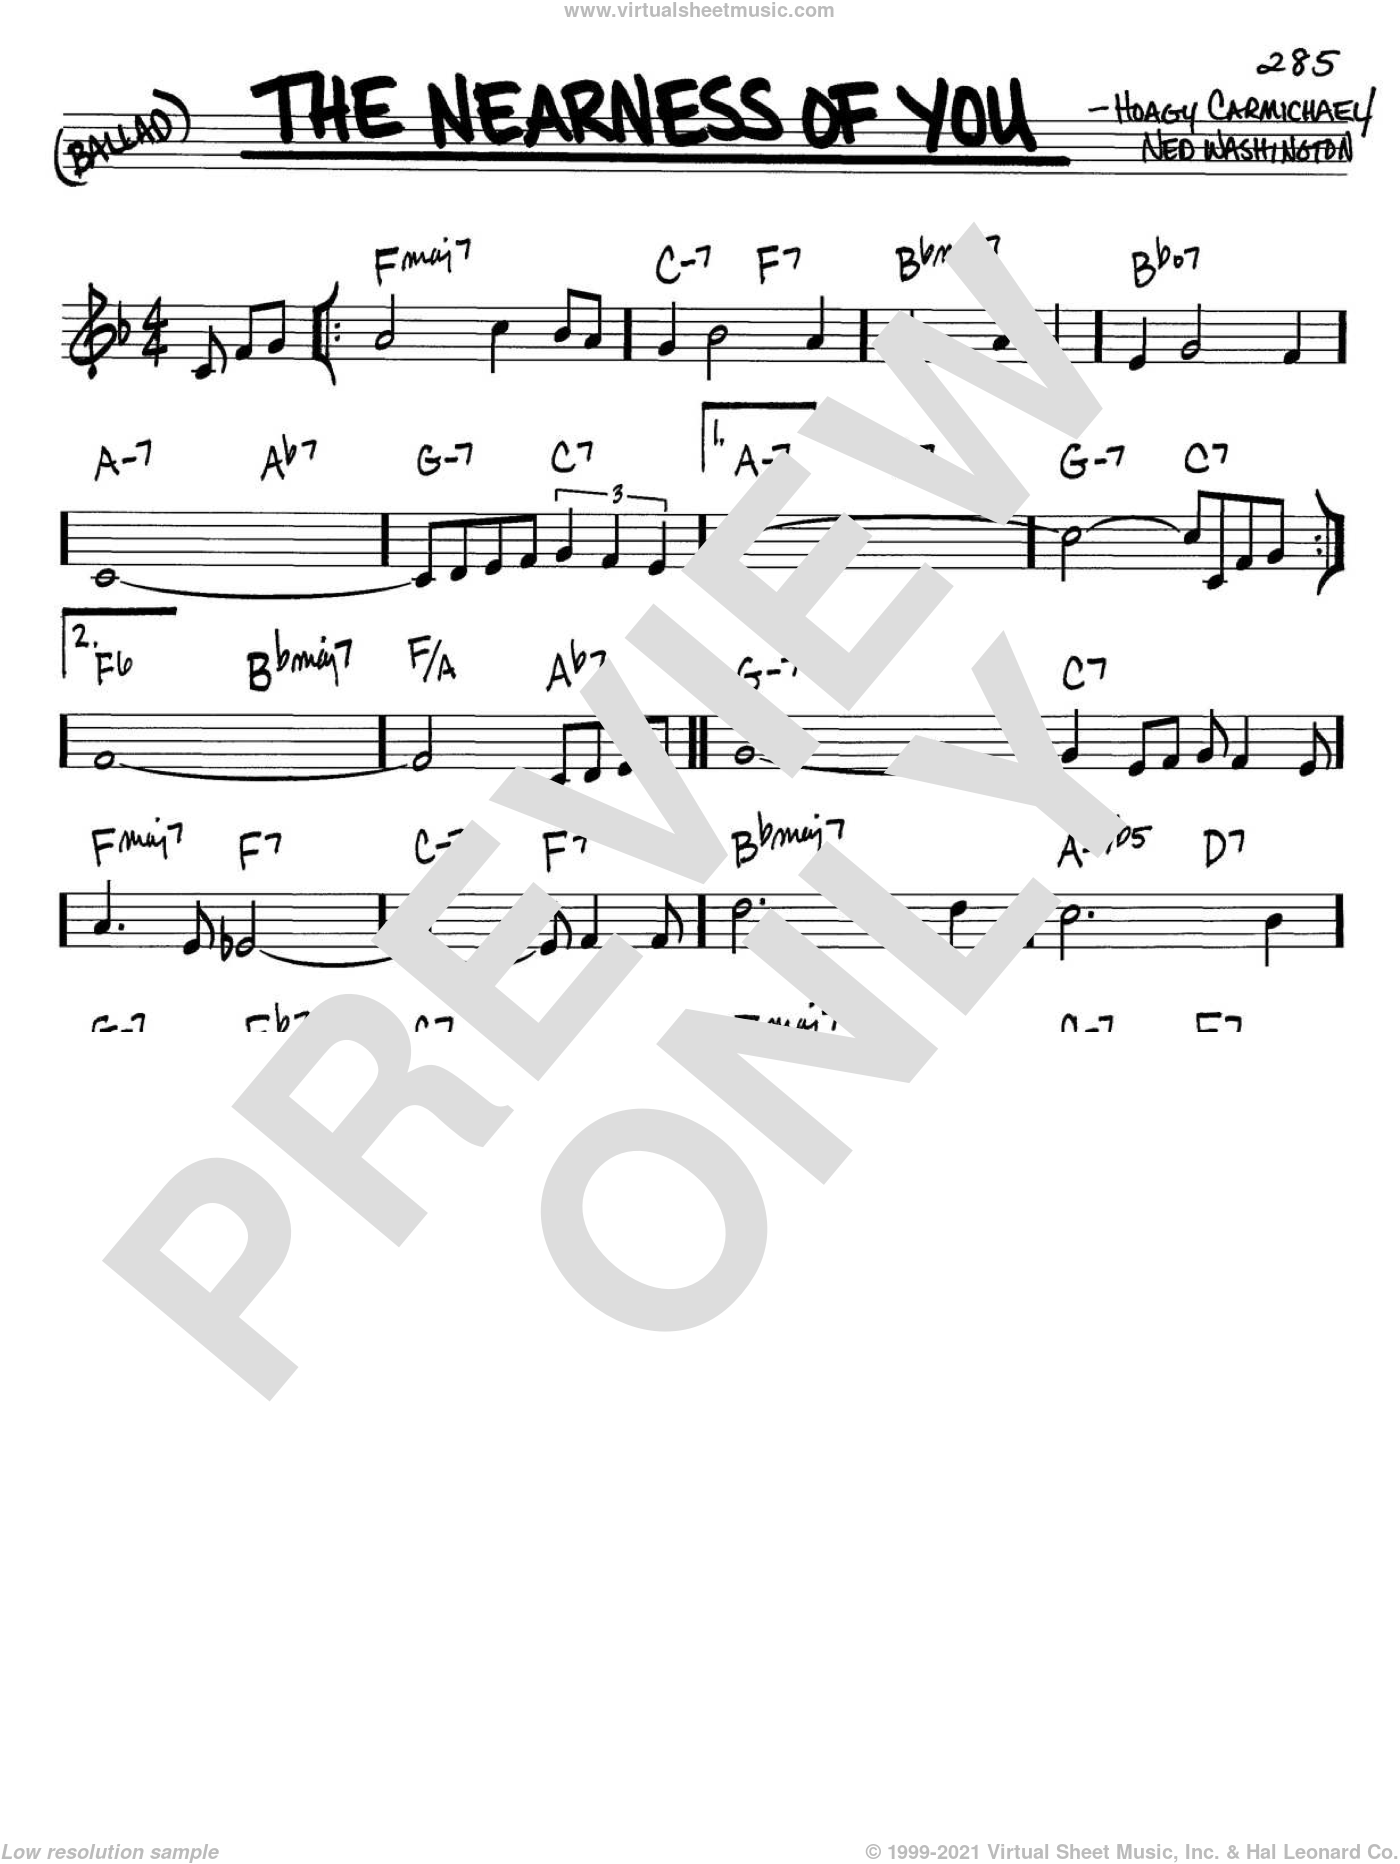 The Nearness Of You sheet music for voice and other instruments (in C) by Hoagy Carmichael and Ned Washington, intermediate skill level